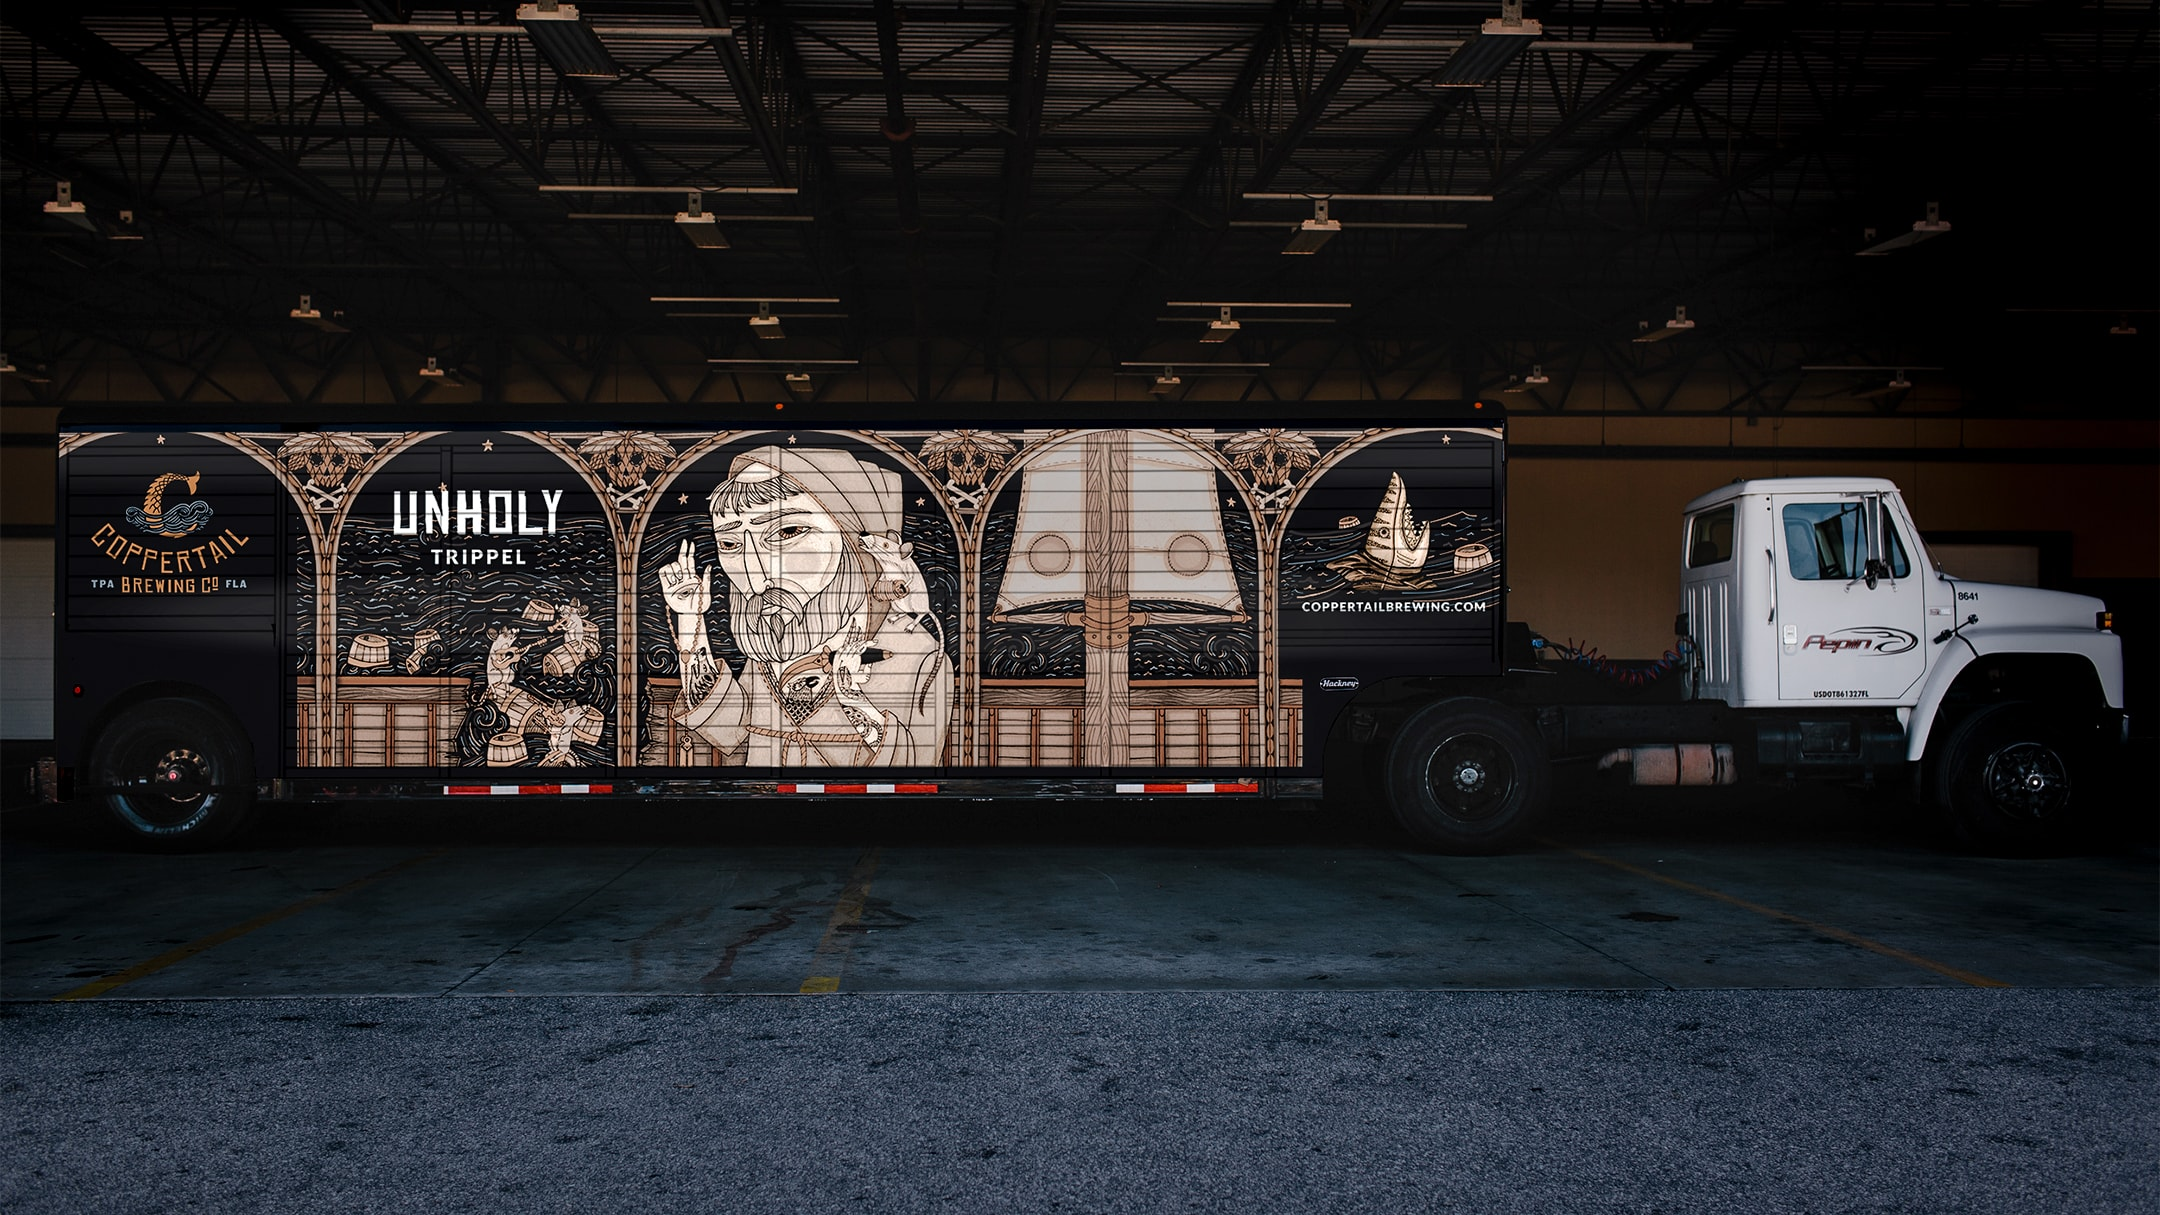 Coppertail brand wrapped truck